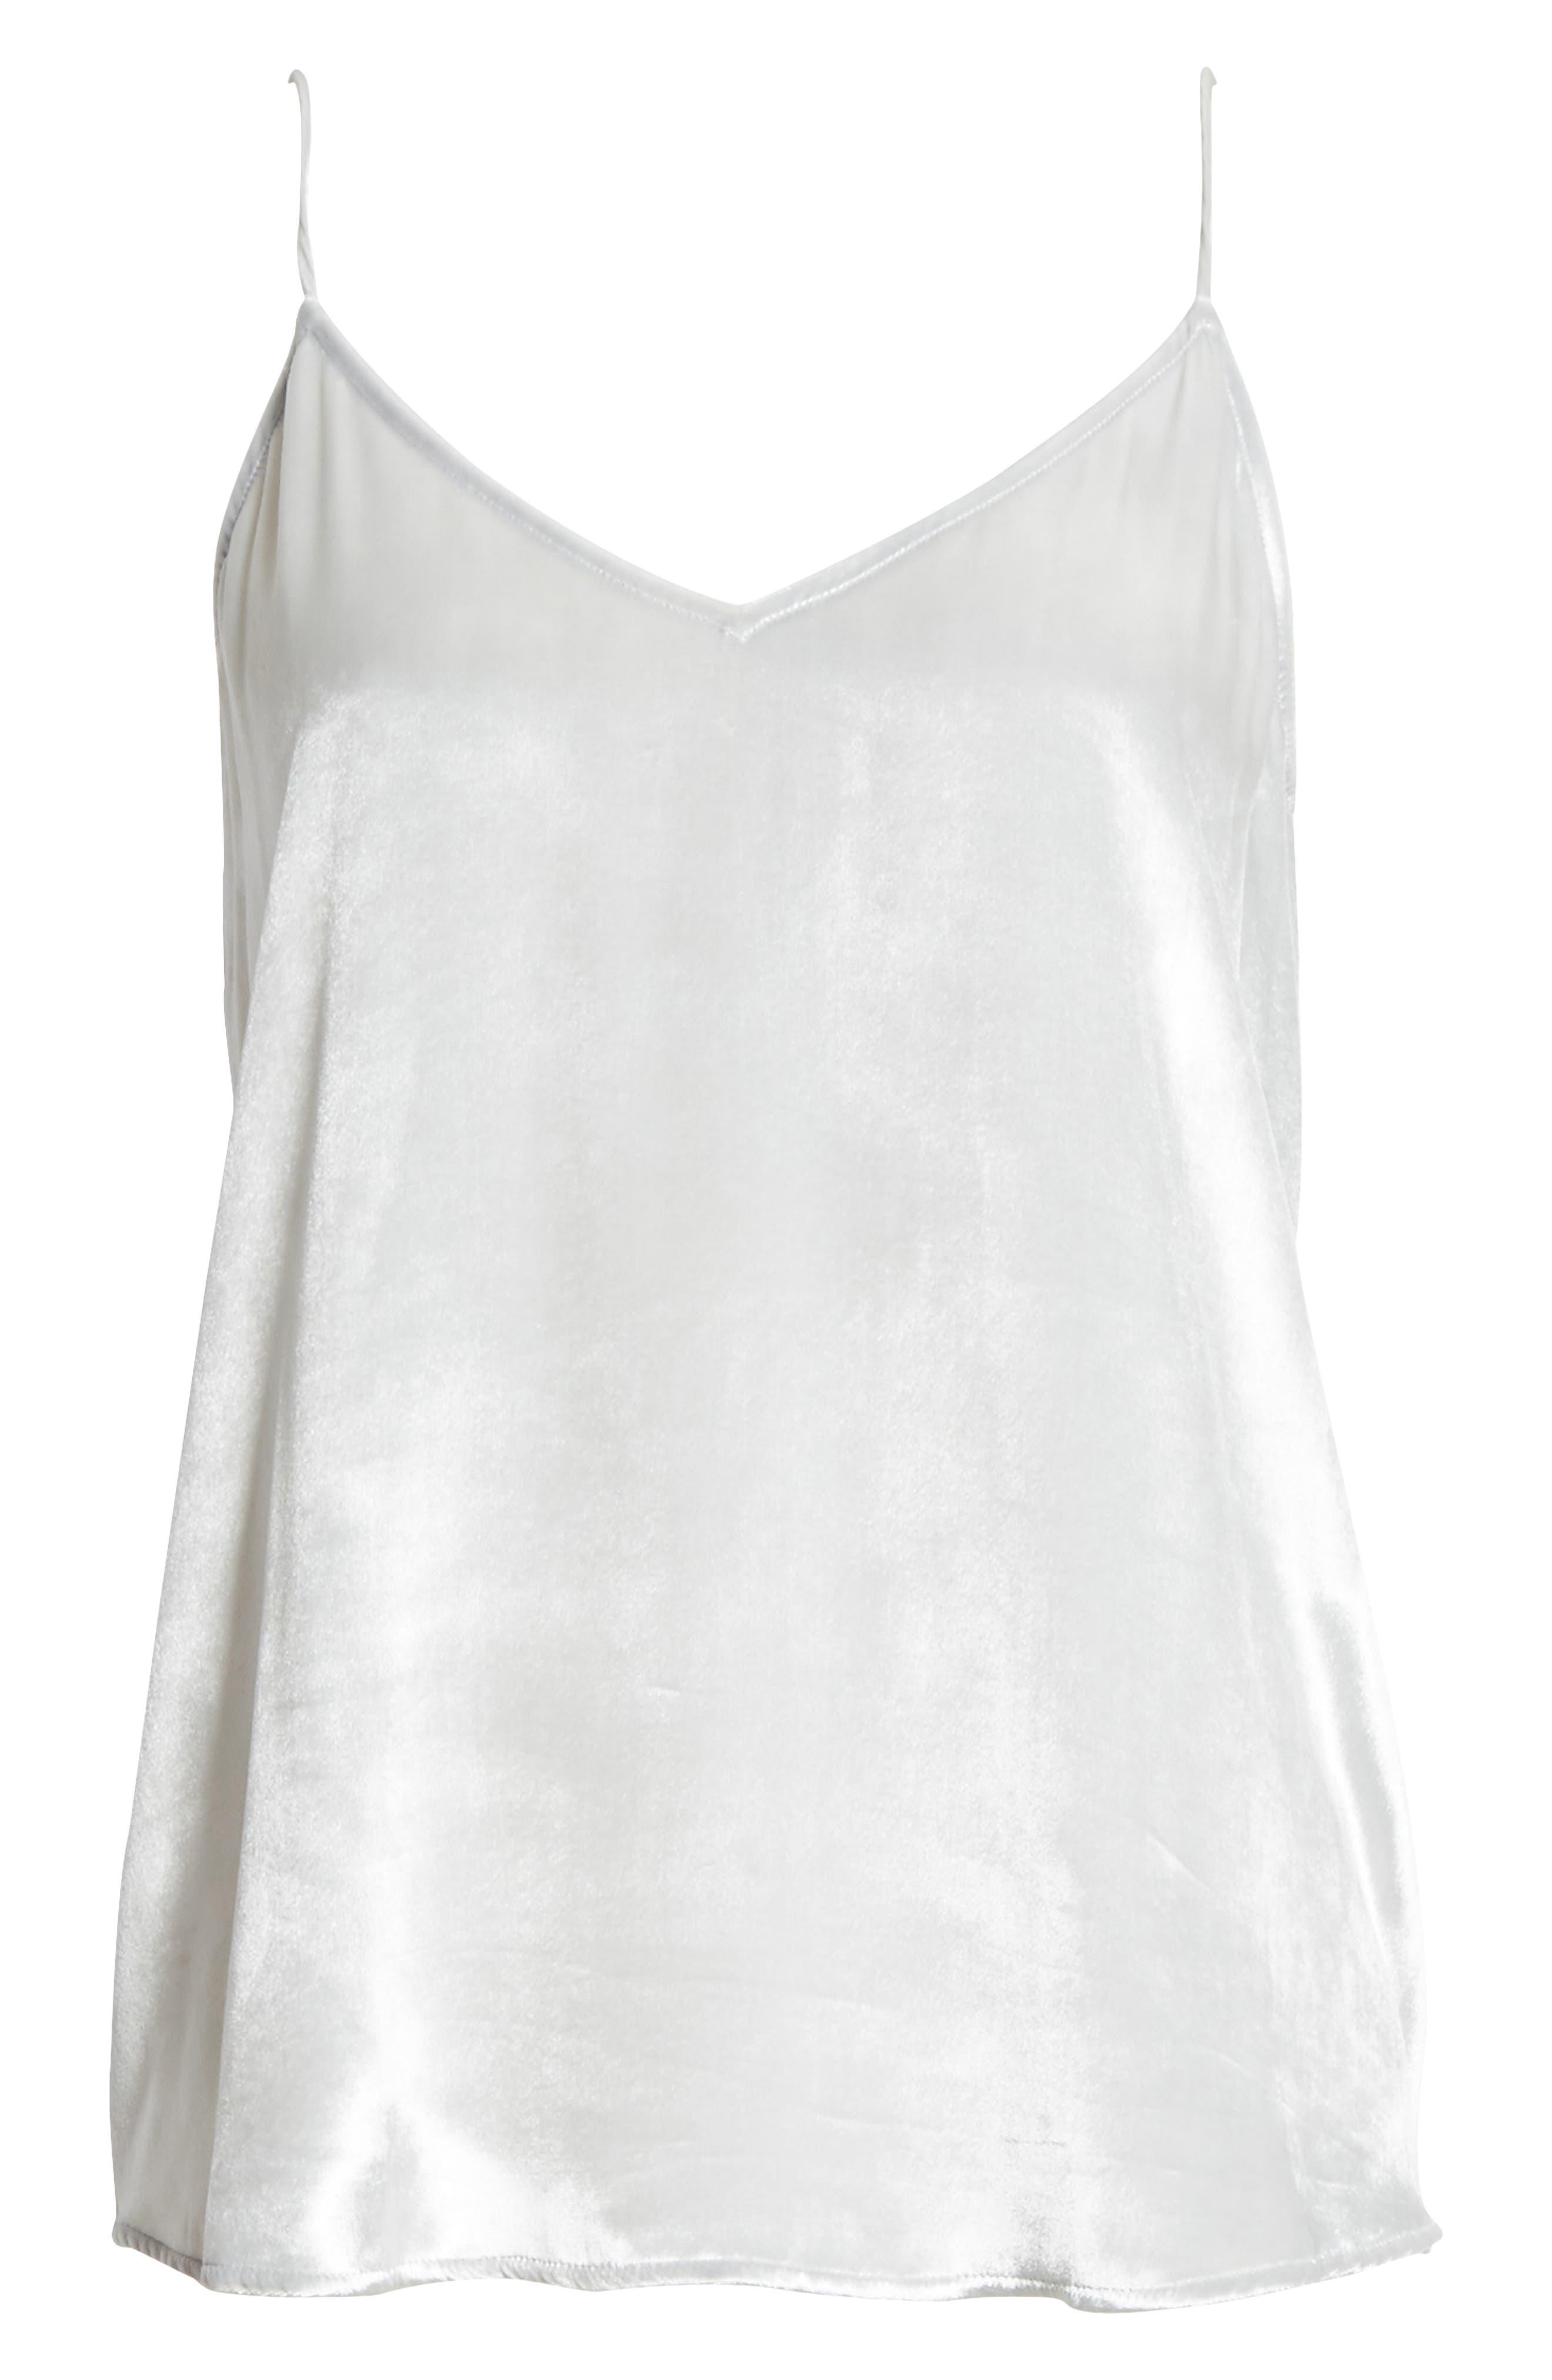 Layla Velvet Camisole,                             Alternate thumbnail 6, color,                             Mineral Grey